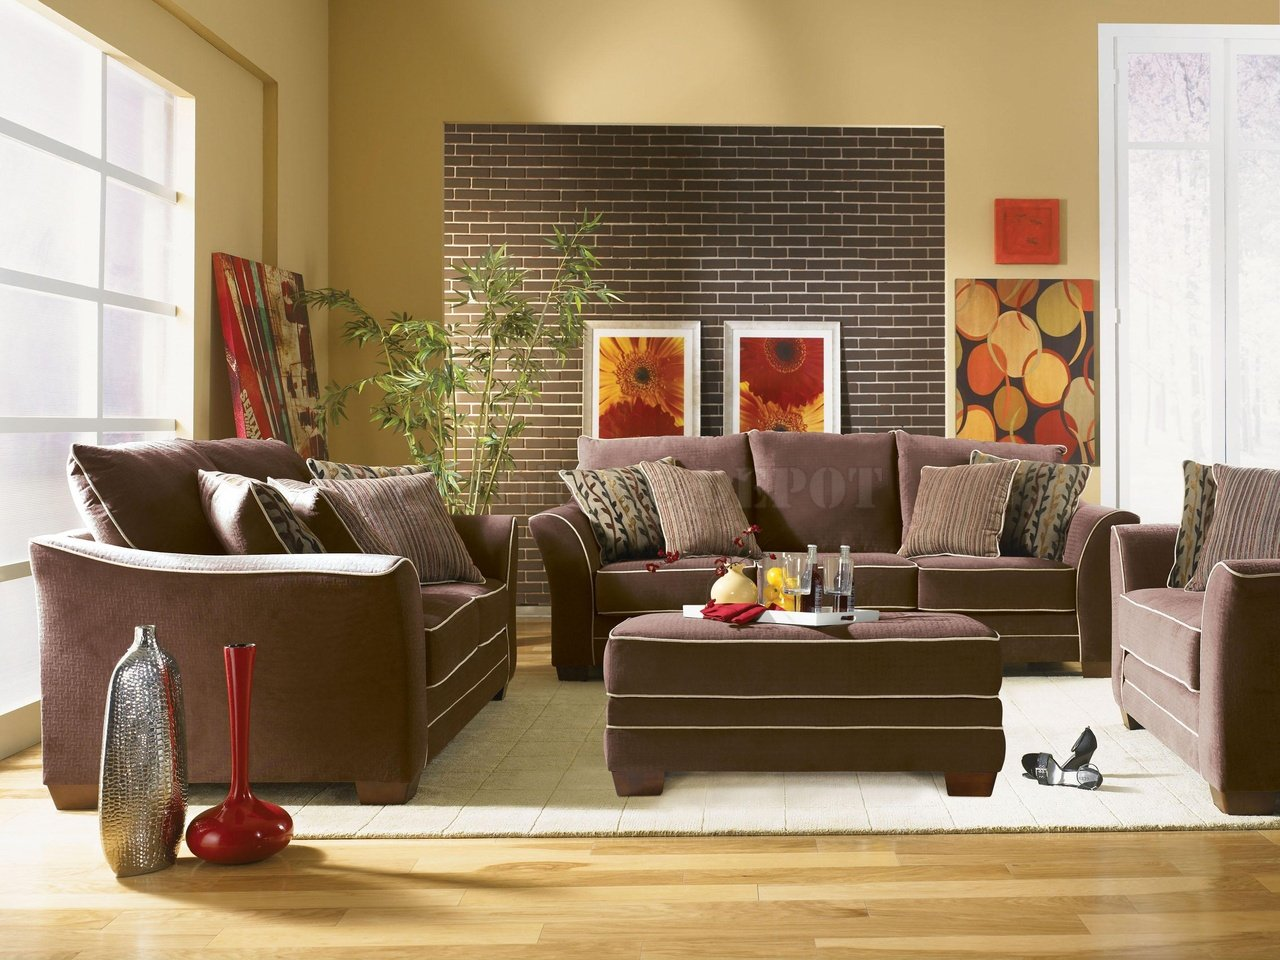 Interior design ideas interior designs home design ideas for Great living room furniture